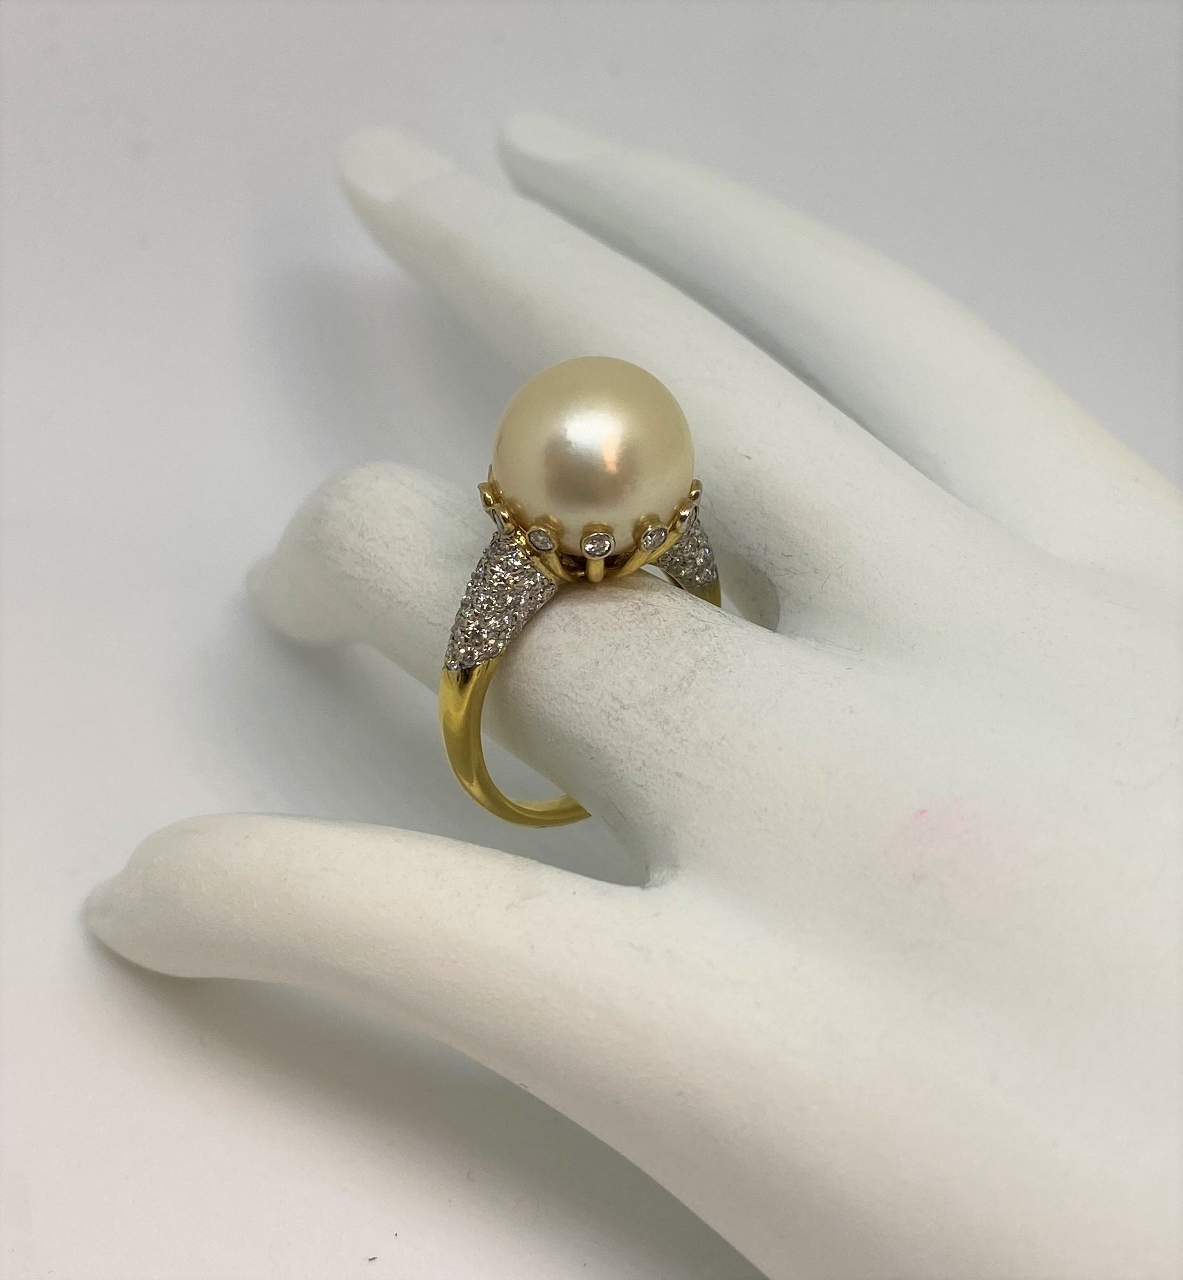 12 Millimeters Golden South Sea Pearl Ring